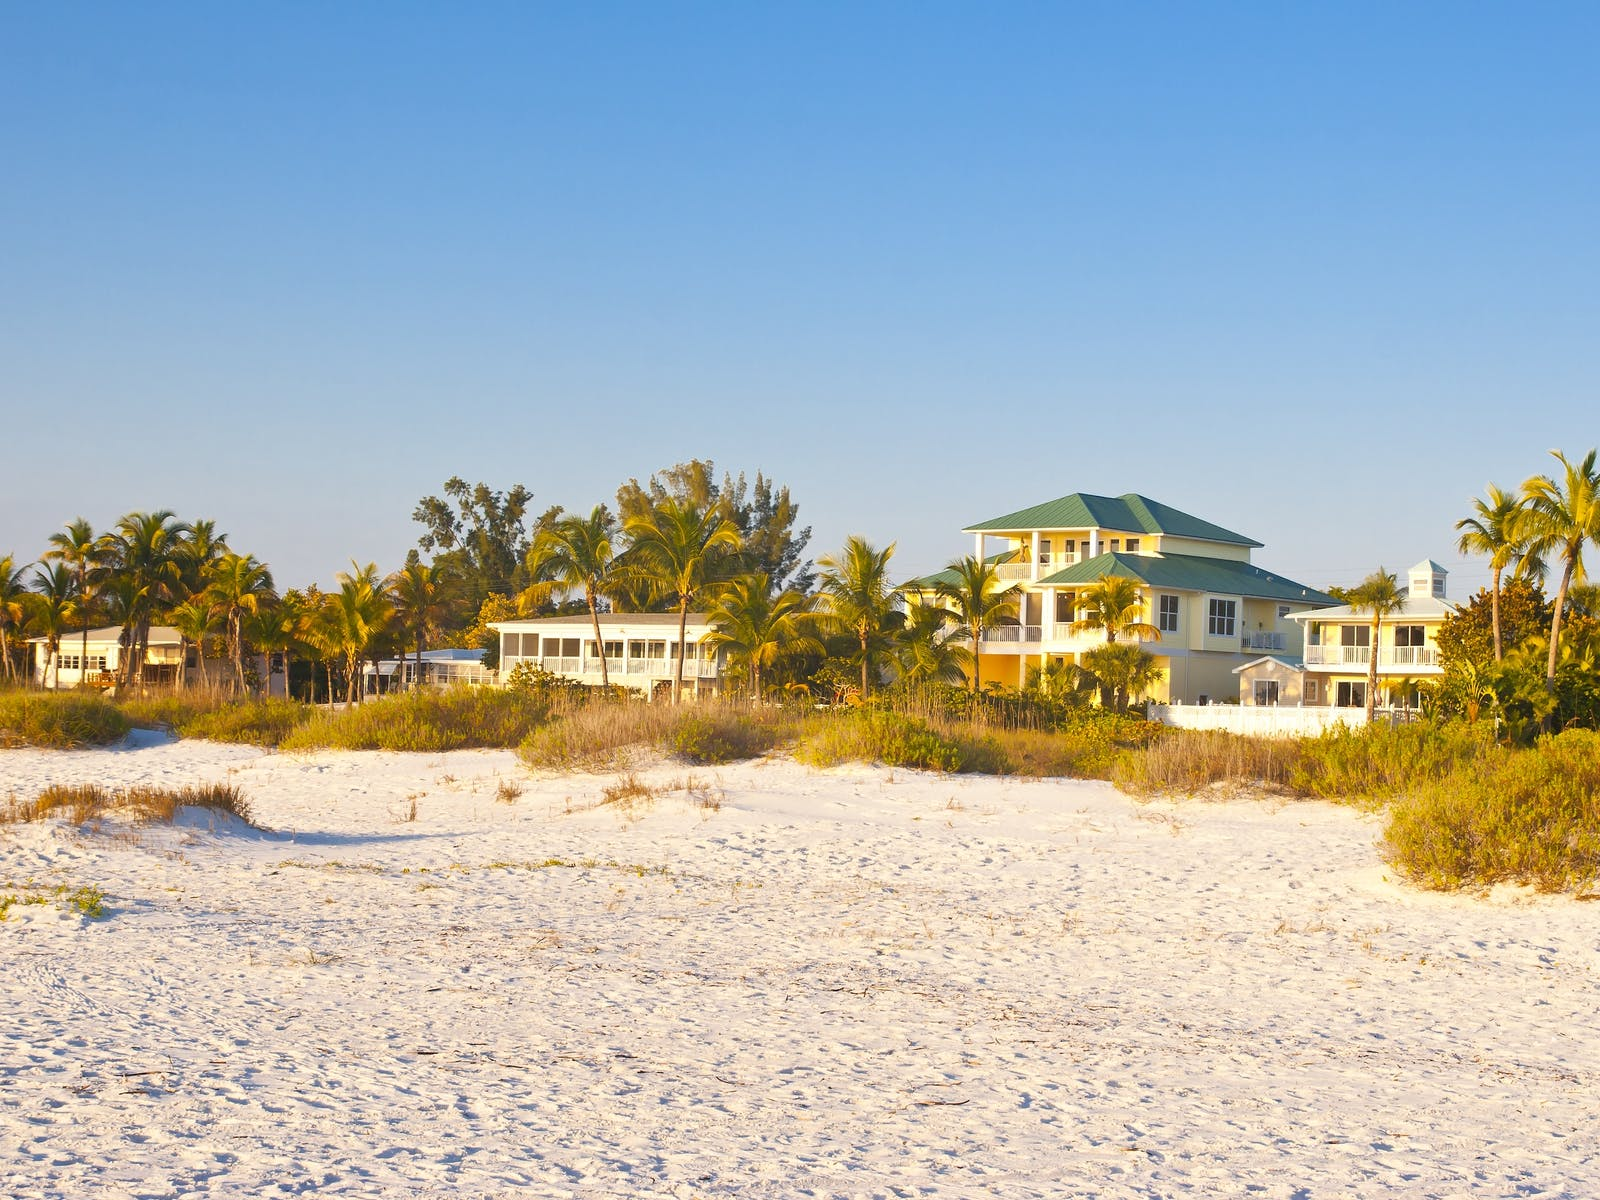 Florida coastline with beachfront vacation rentals